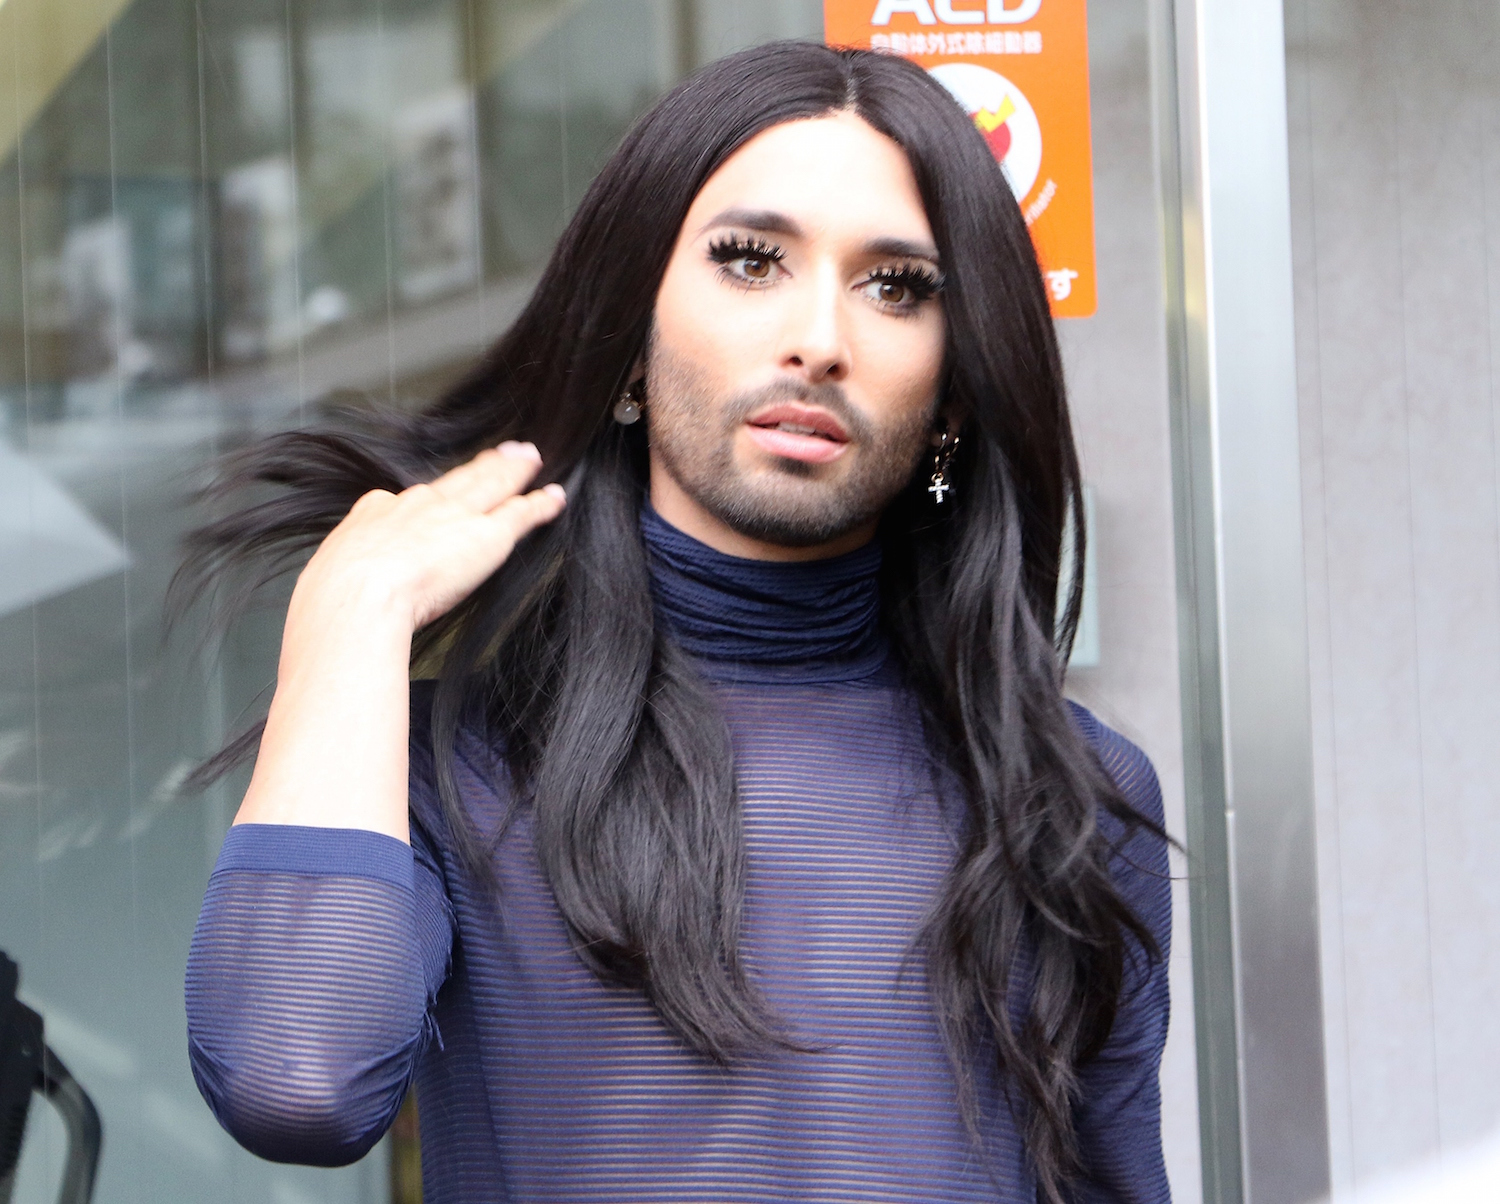 "Drag queen singer Conchita Wurst of Austria leaves the Shibuya ward office in Tokyo on July 9, 2015, after he met with Shibuya ward chief Ken Hasebe. Shibuya ward decided to issue ""partnership"" certificates to gay couples this March since gay couples often have difficulty renting apartments and are stopped by hospitals from visiting loved ones because they do not have officially recognised family relationships.  AFP PHOTO / Yoshikazu TSUNO        (Photo credit should read YOSHIKAZU TSUNO/AFP/Getty Images)"